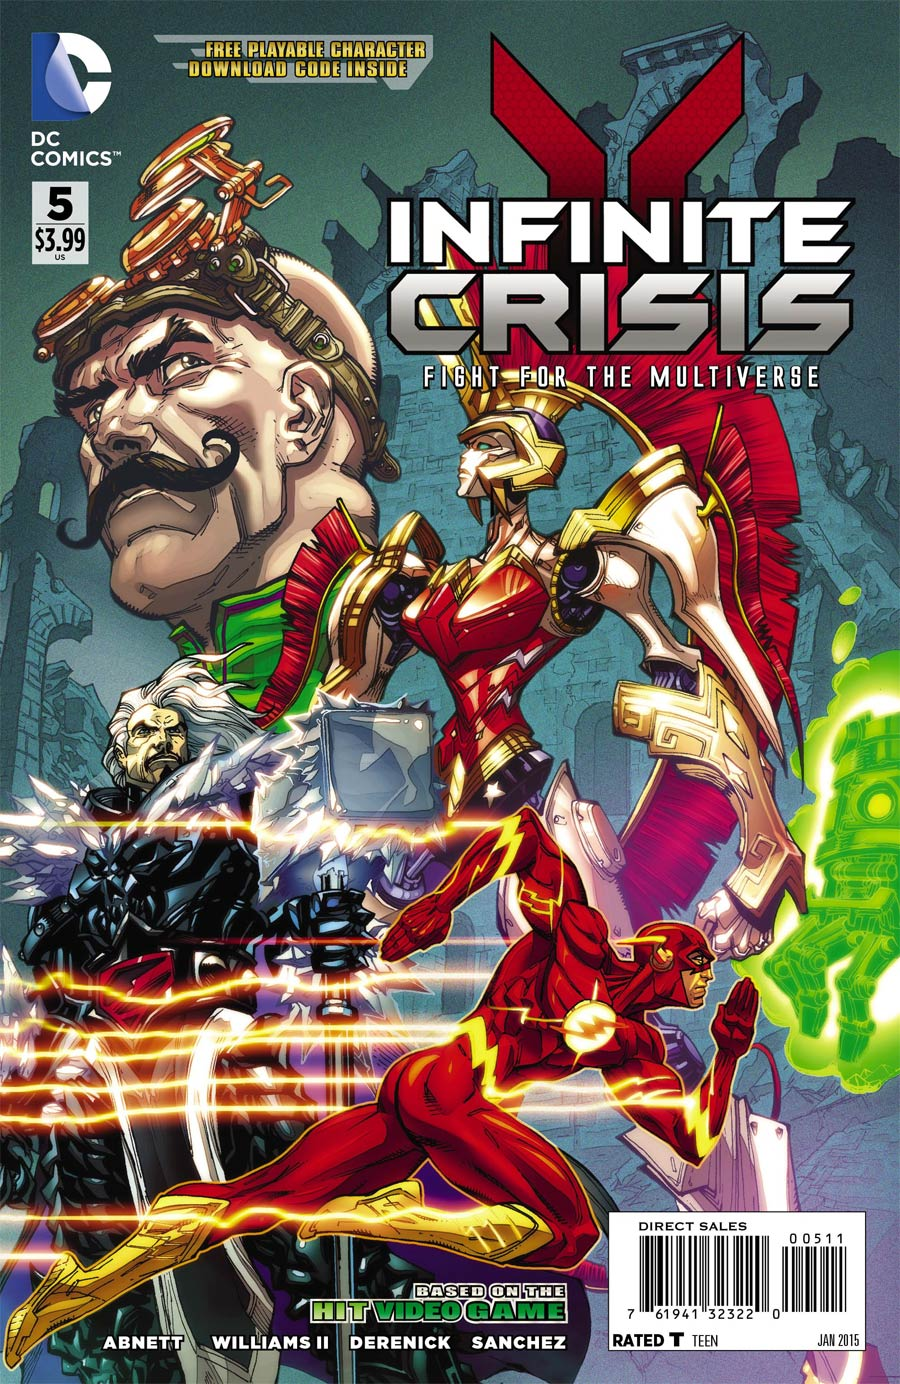 Infinite Crisis Fight For The Multiverse #5 Cover A With Polybag